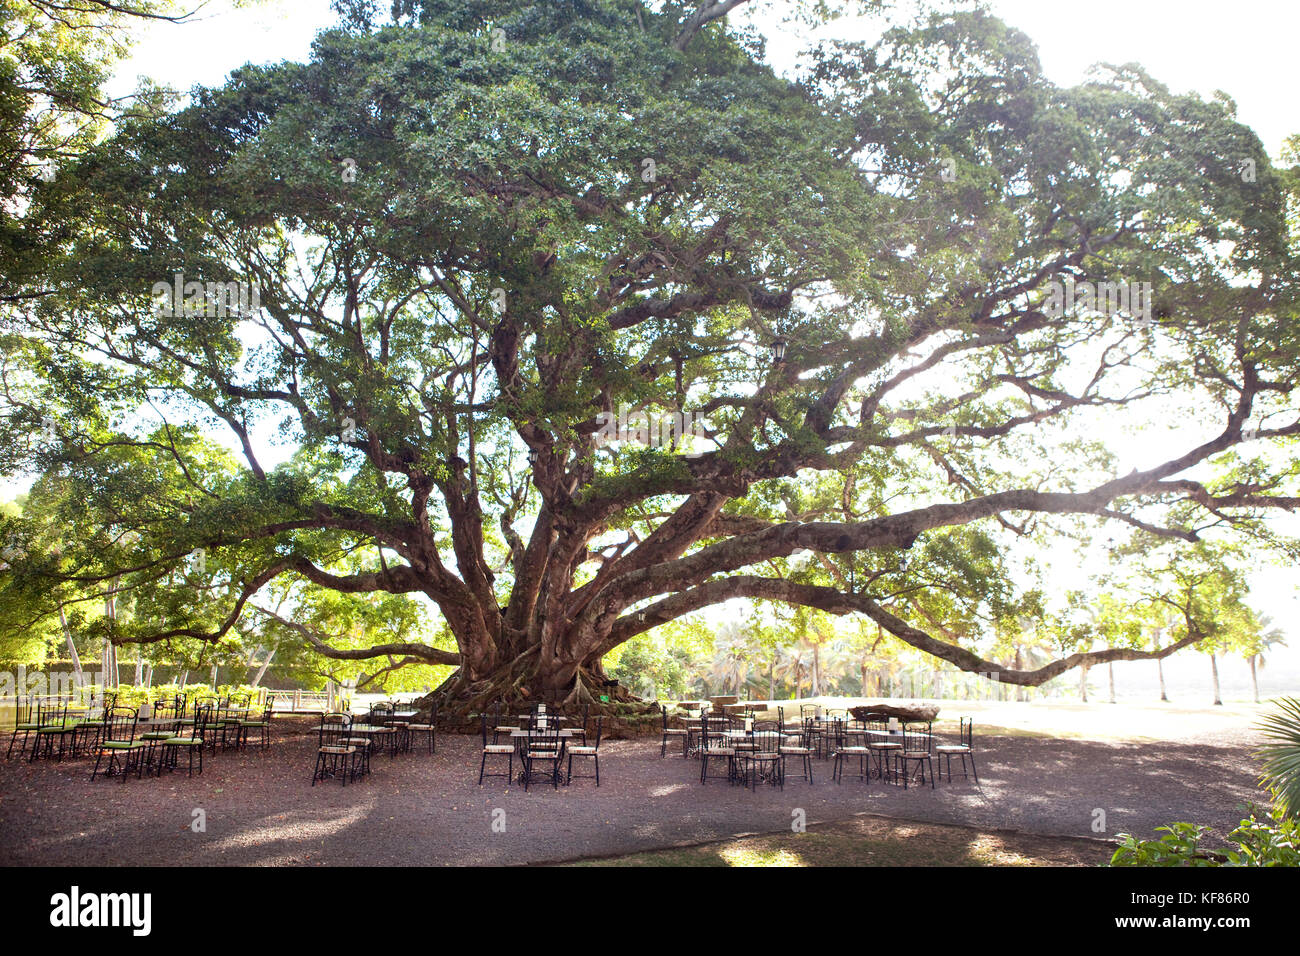 MAURITIUS, Bel Ombre, outdoor tables are prepared for dinner guests under a large tree at the Villas Valriche Resort - Stock Image